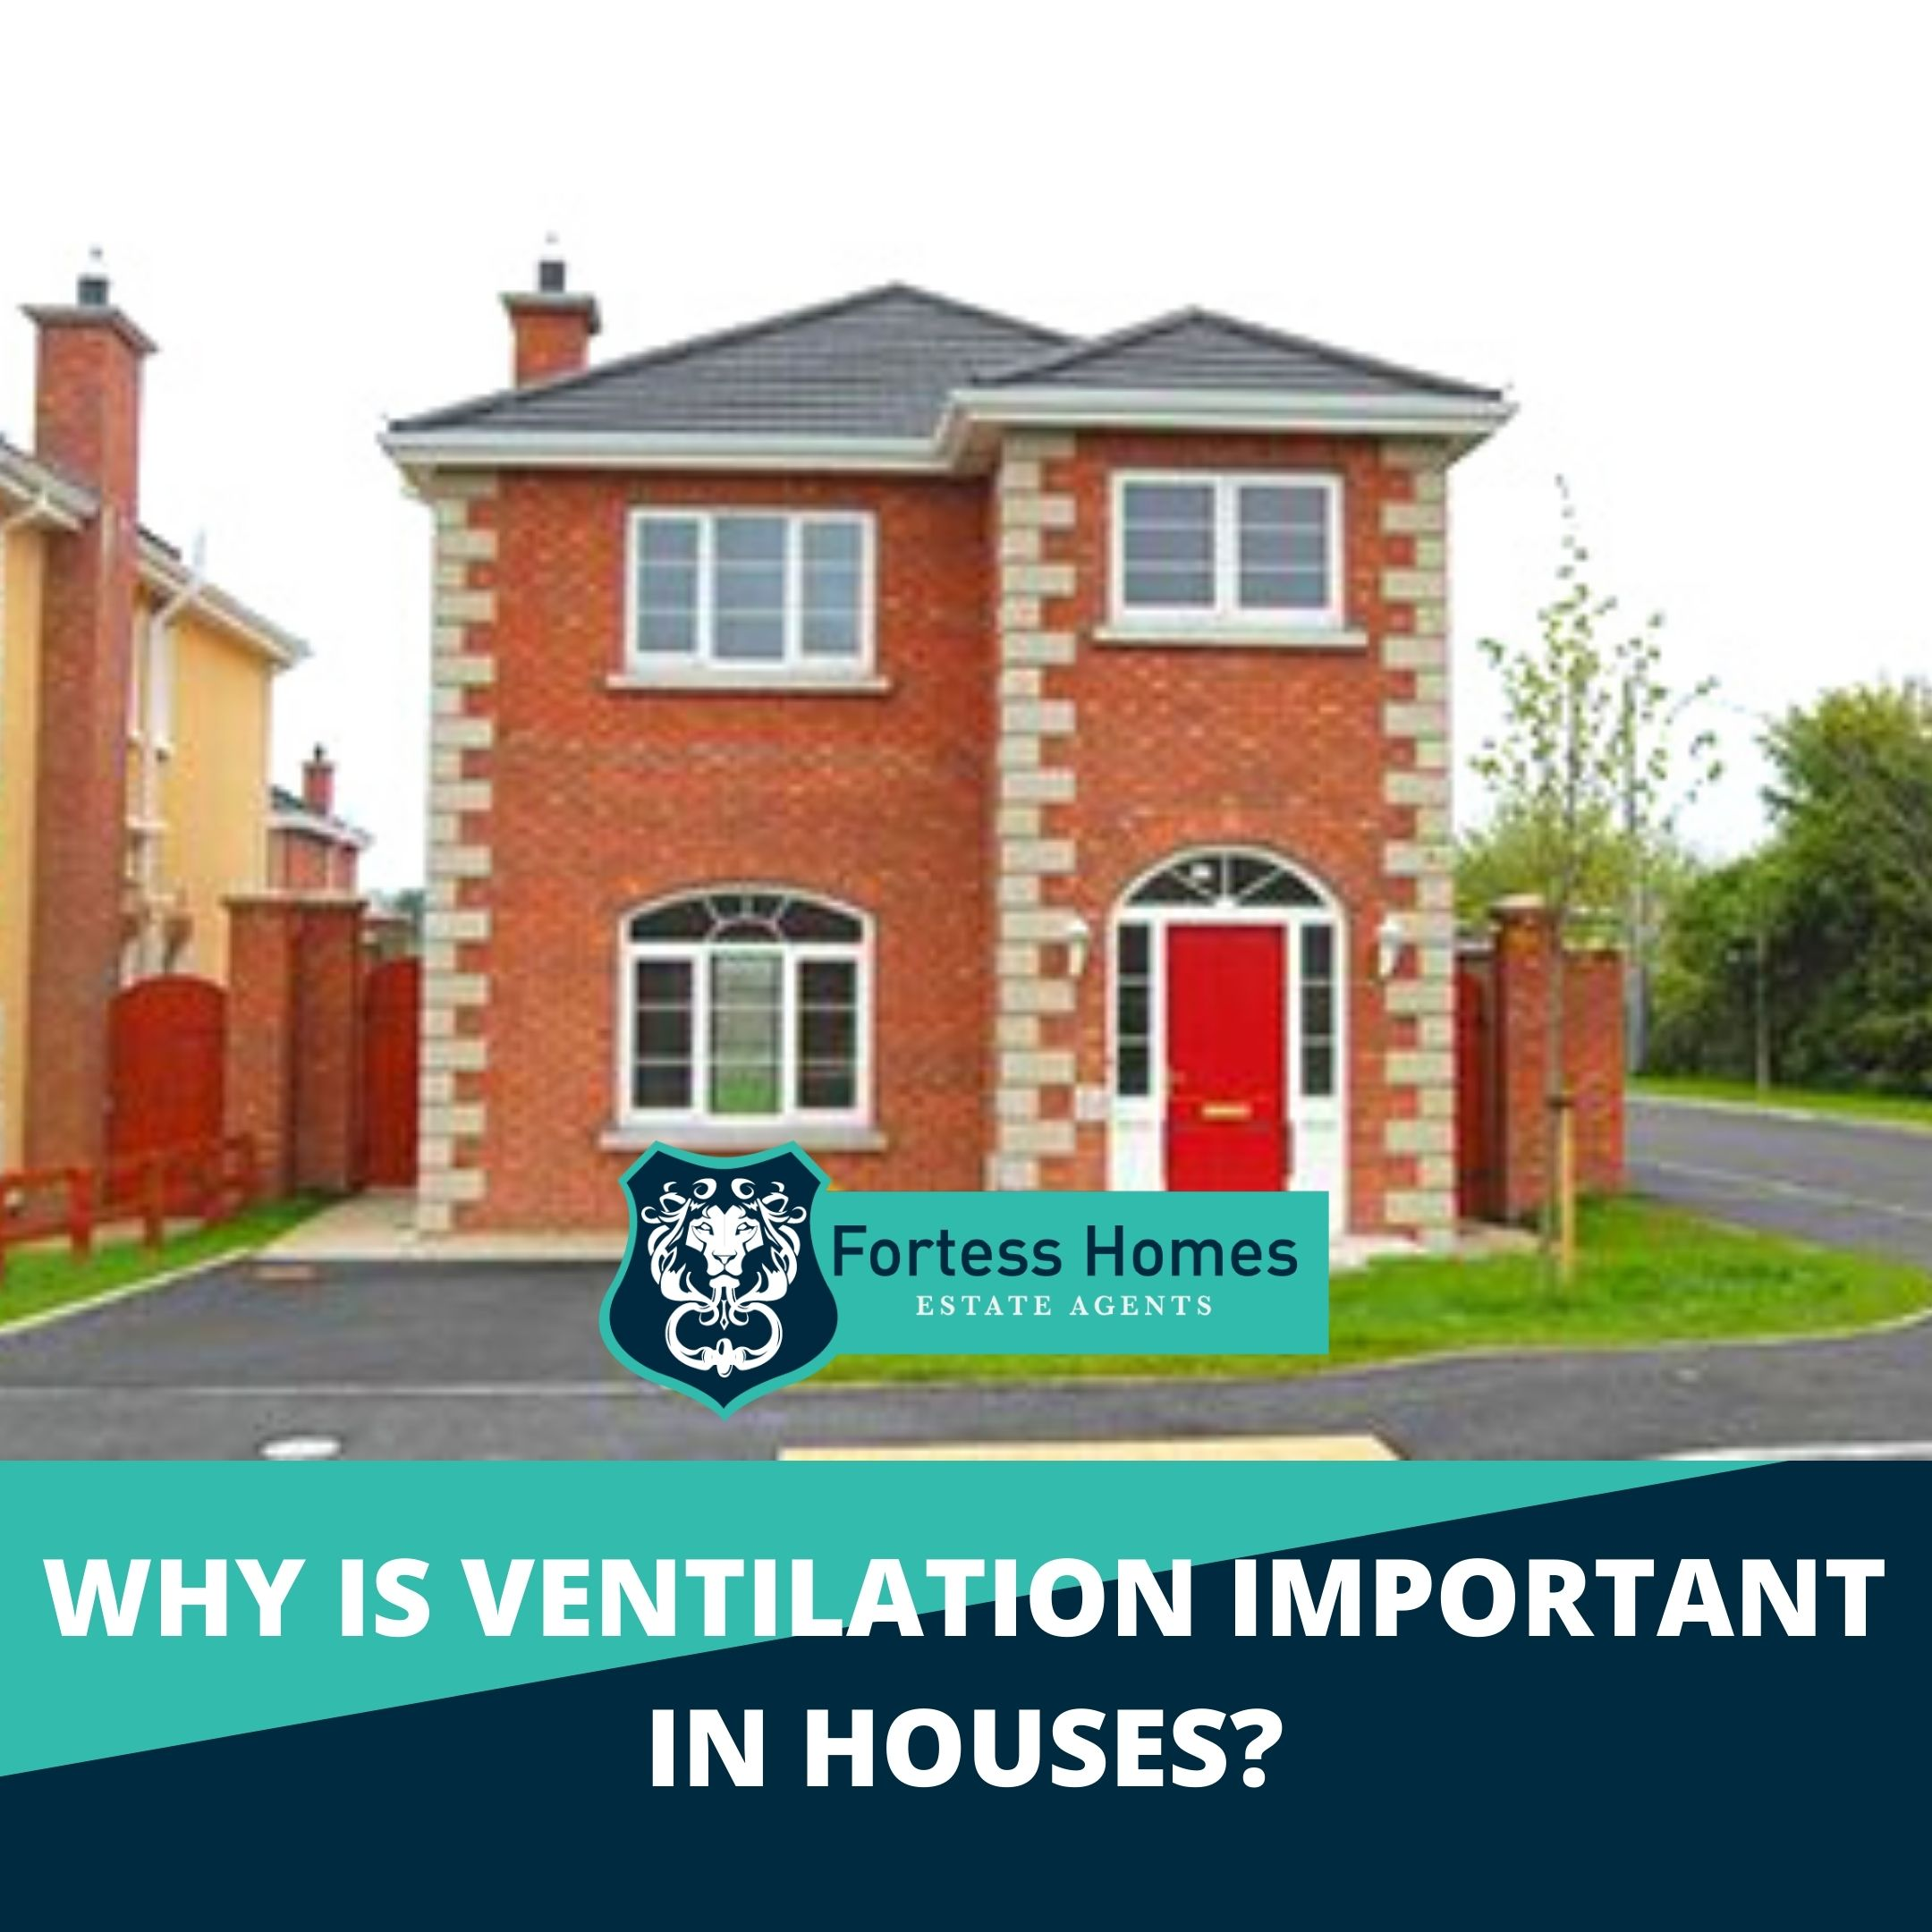 WHY IS VENTILATION IMPORTANT IN HOUSES?